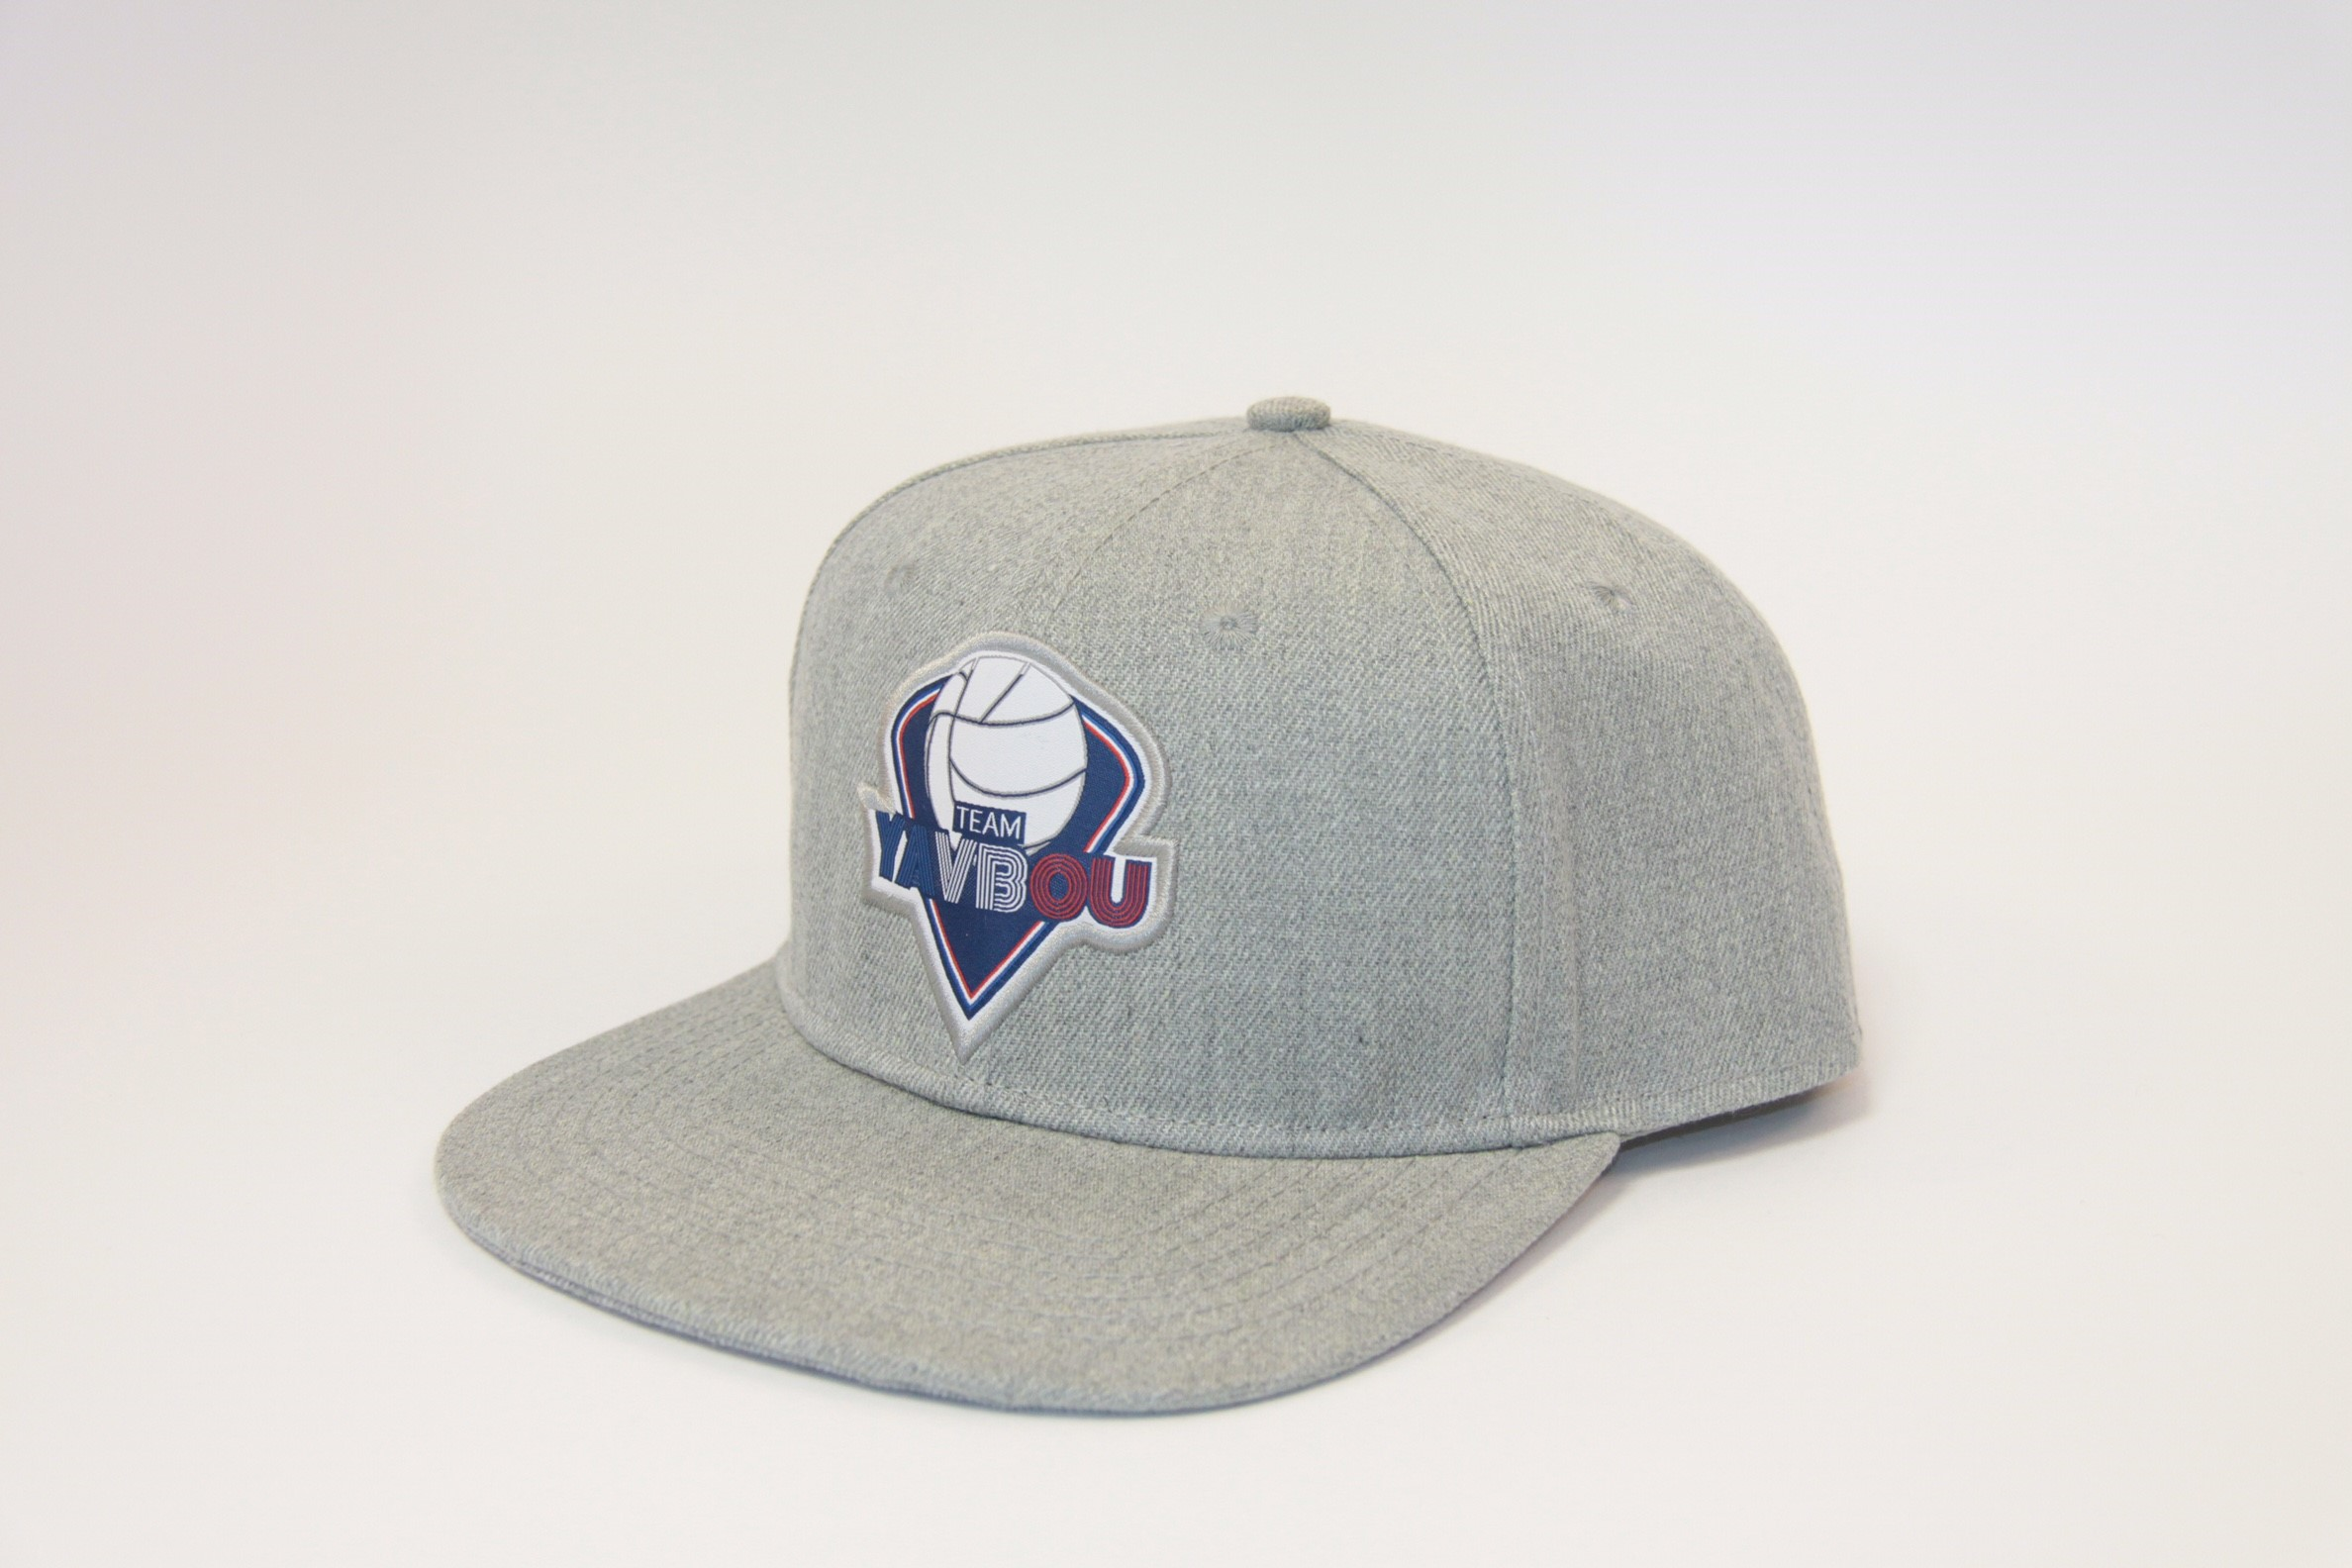 casquette Team Yavbou volley ball France